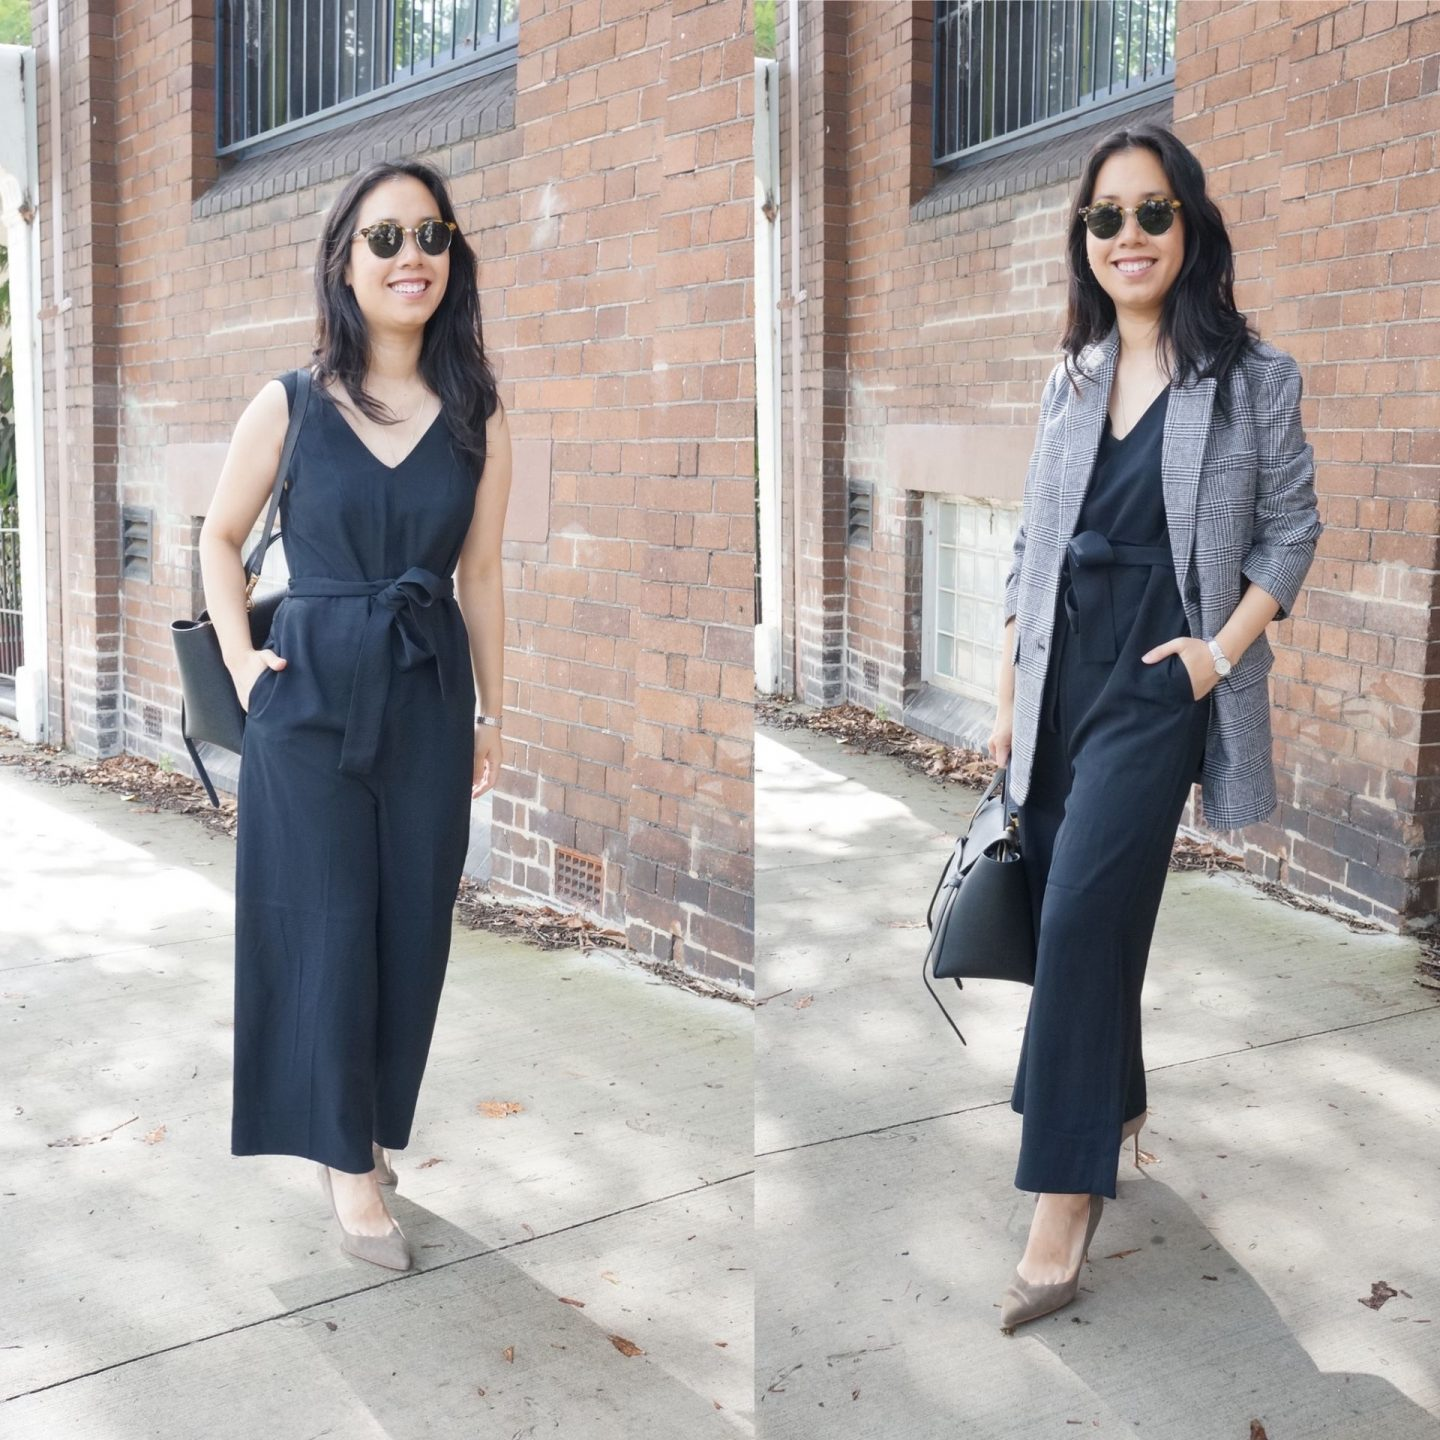 everlane essential jumpsuit in blog post about everlane workwear favourites